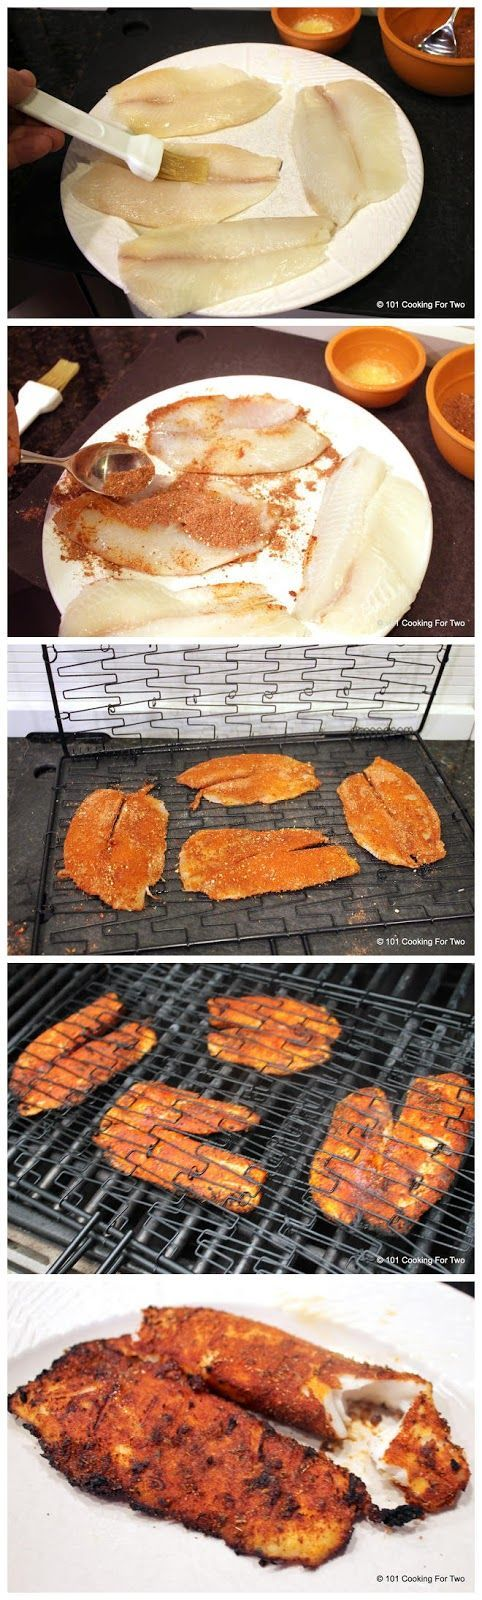 Grilled Blackened Tilapia - nice and easy blackened recipe. The brown sugar adds a hint of sweetness. #grilledfishrecipes